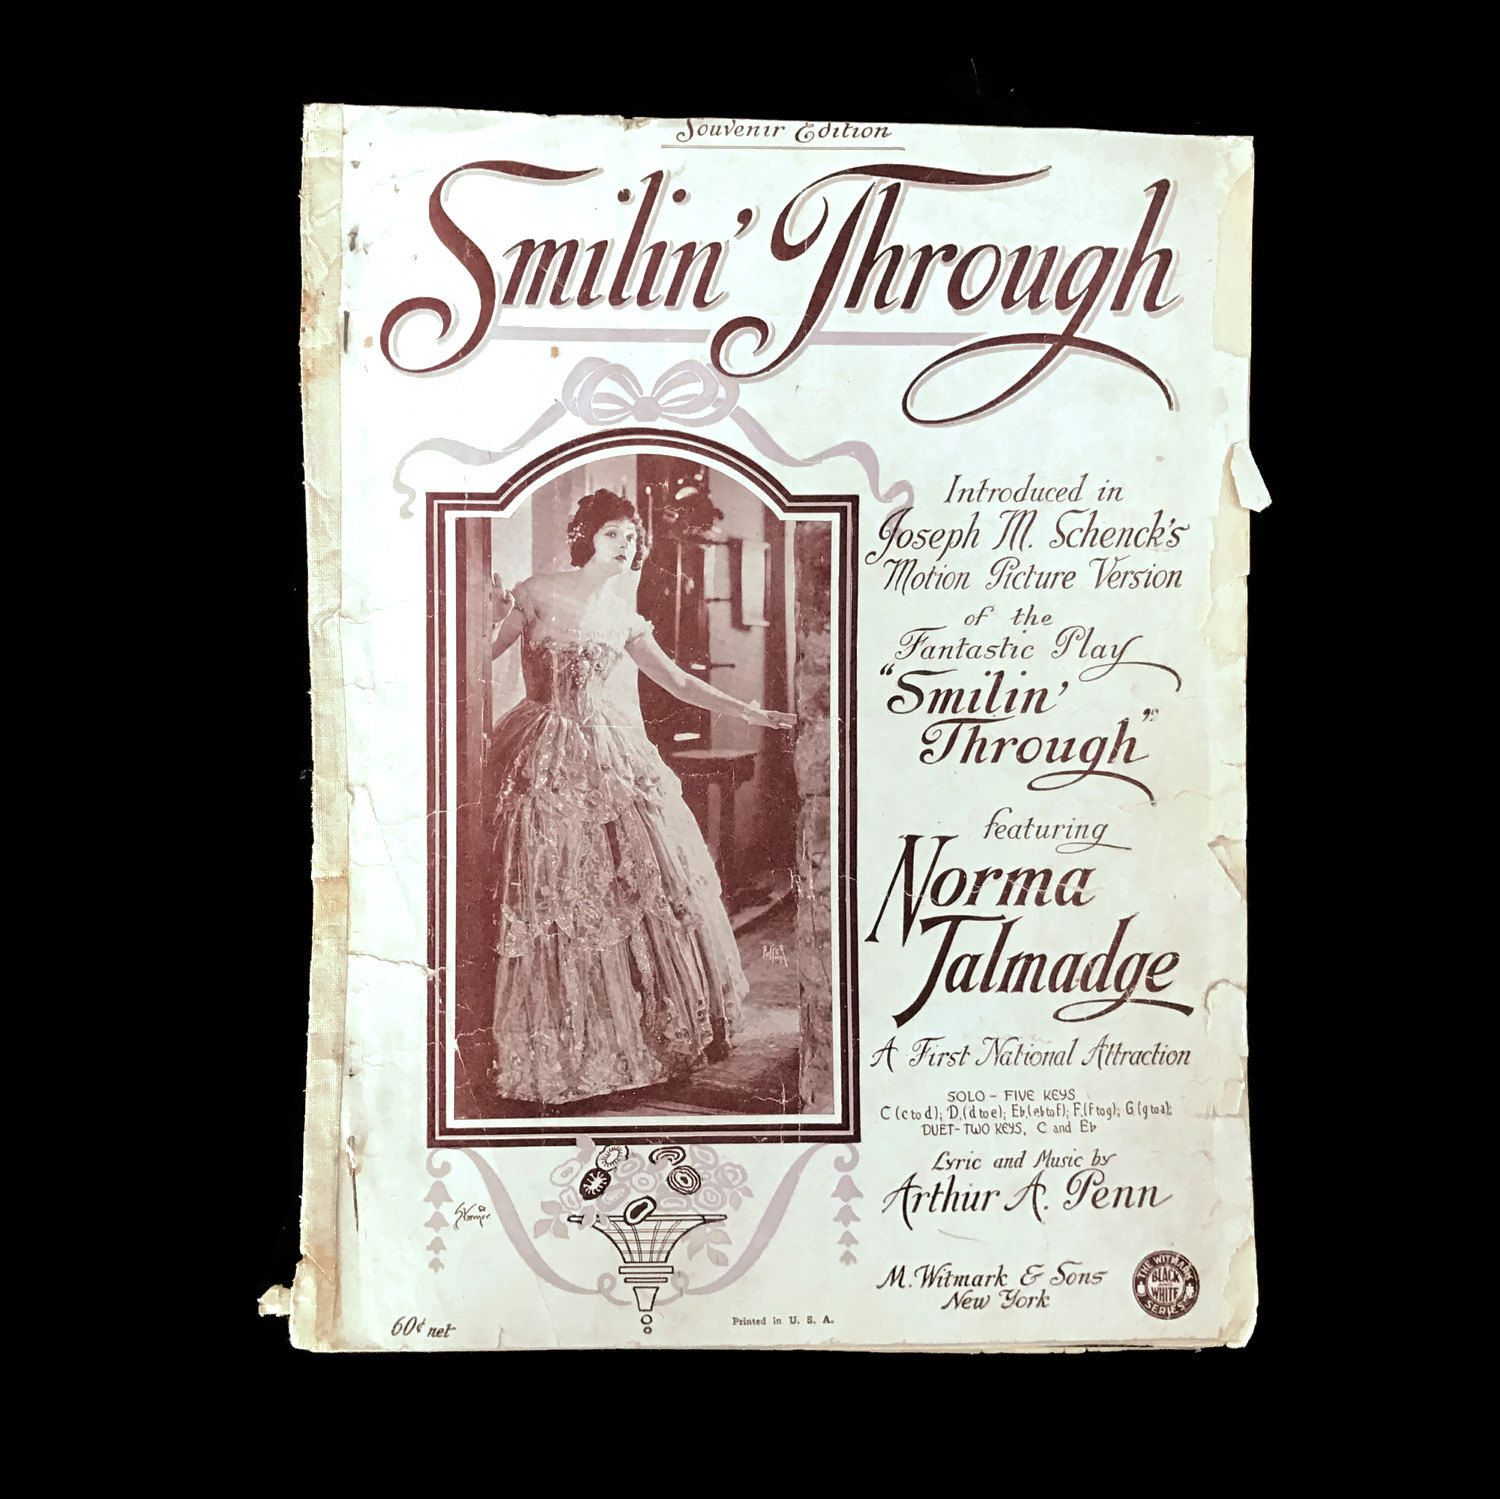 Vintage Sheet Music Smilin Through S Love Songs